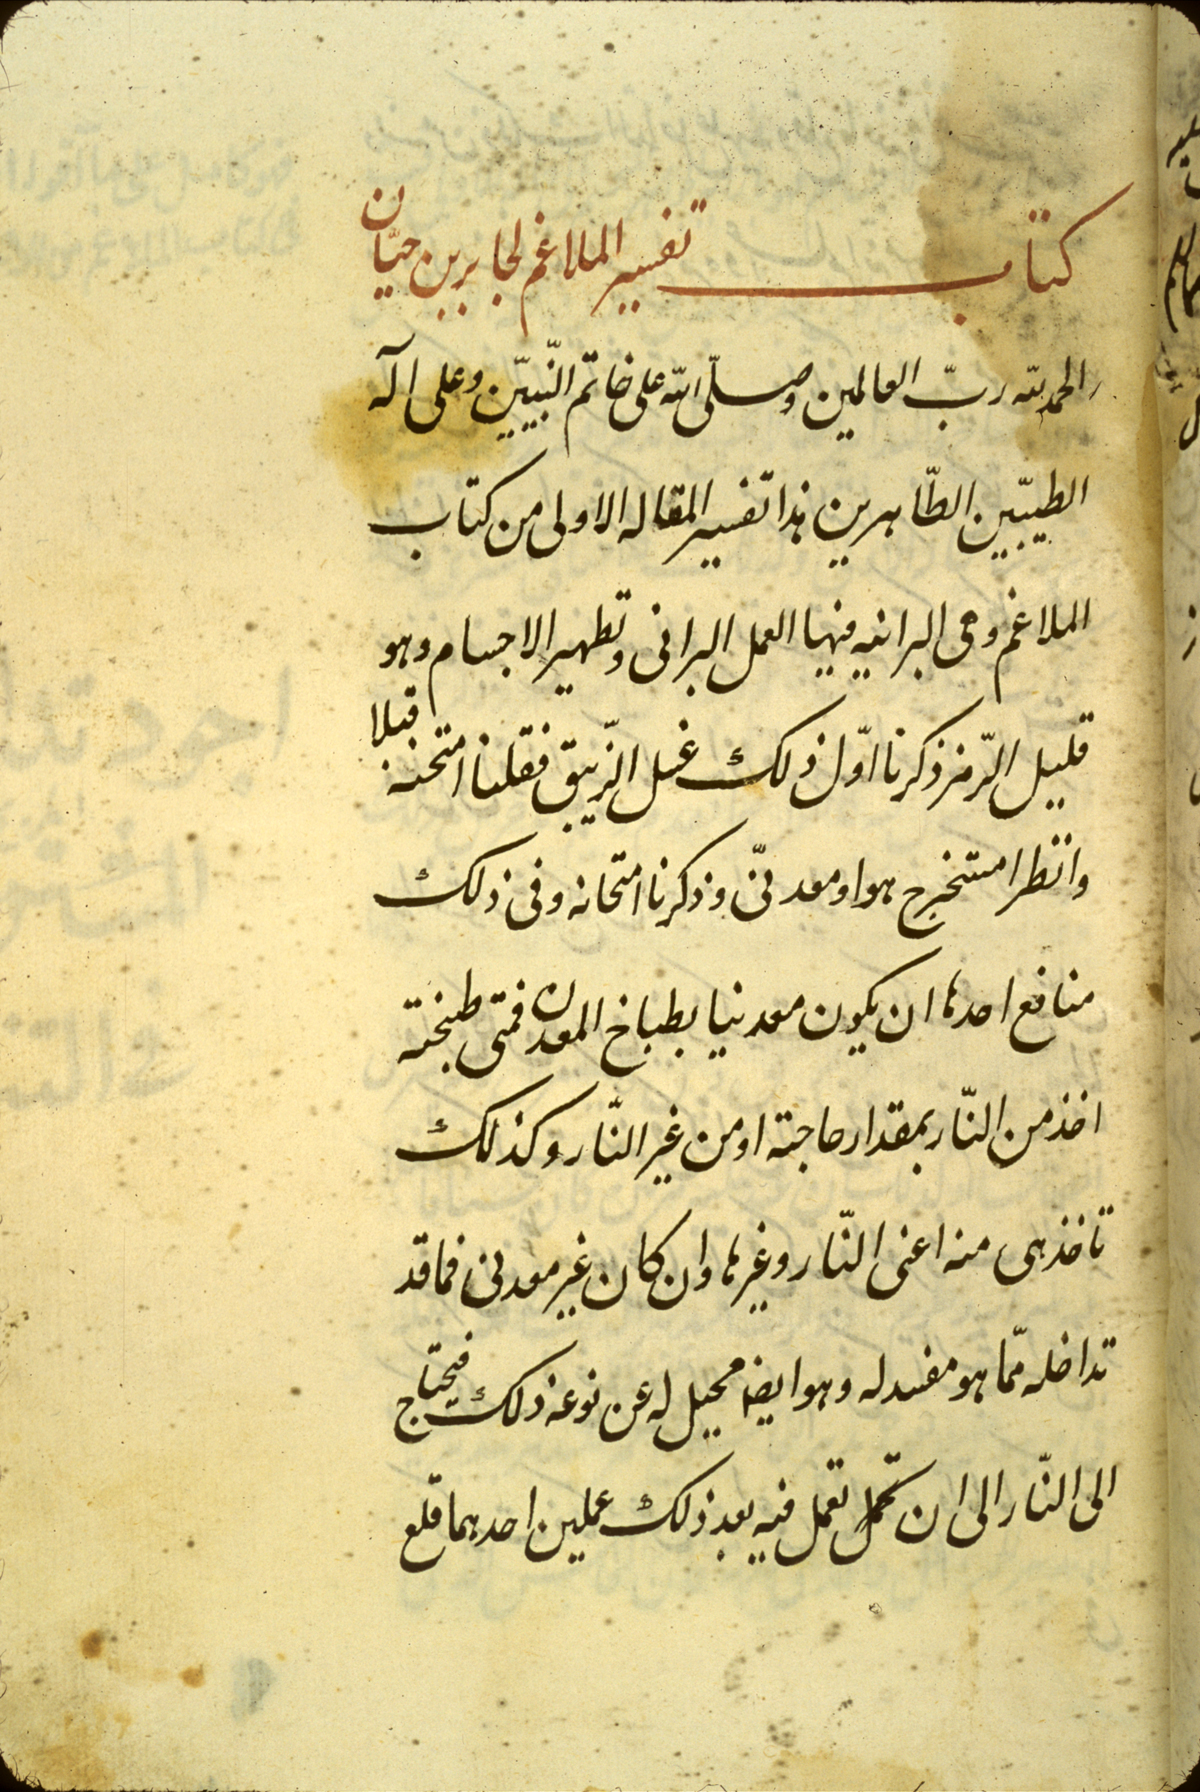 Collection of etymologies of English words that came from Arabic